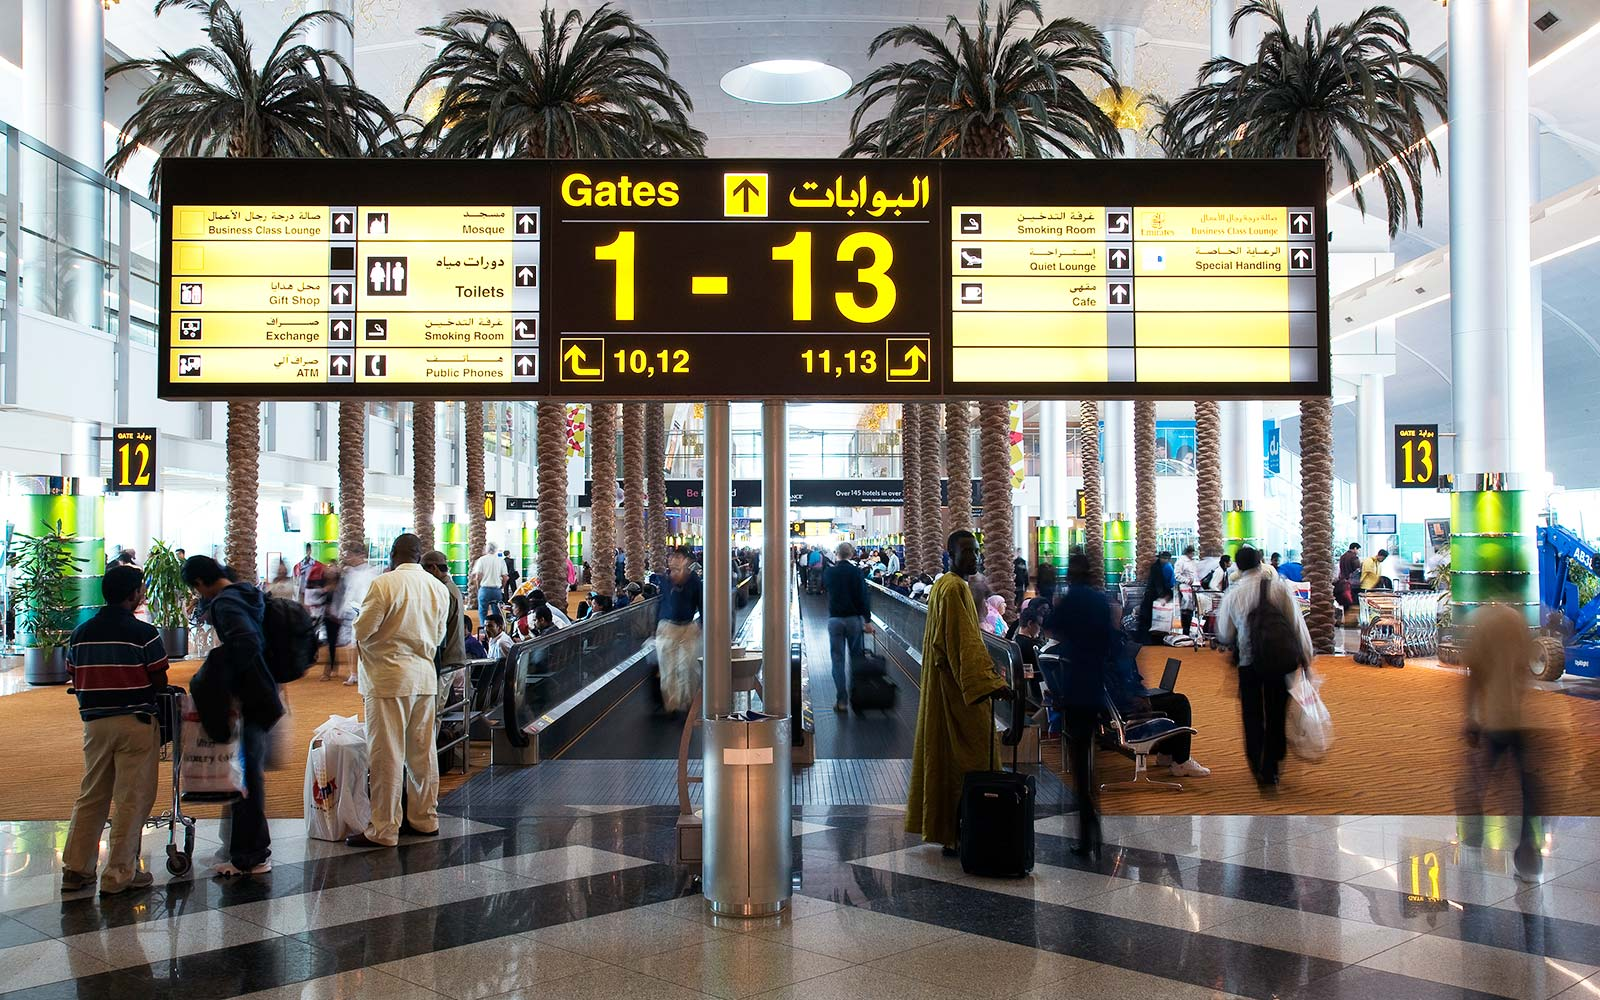 Dubai airport could make you repack your carry-on